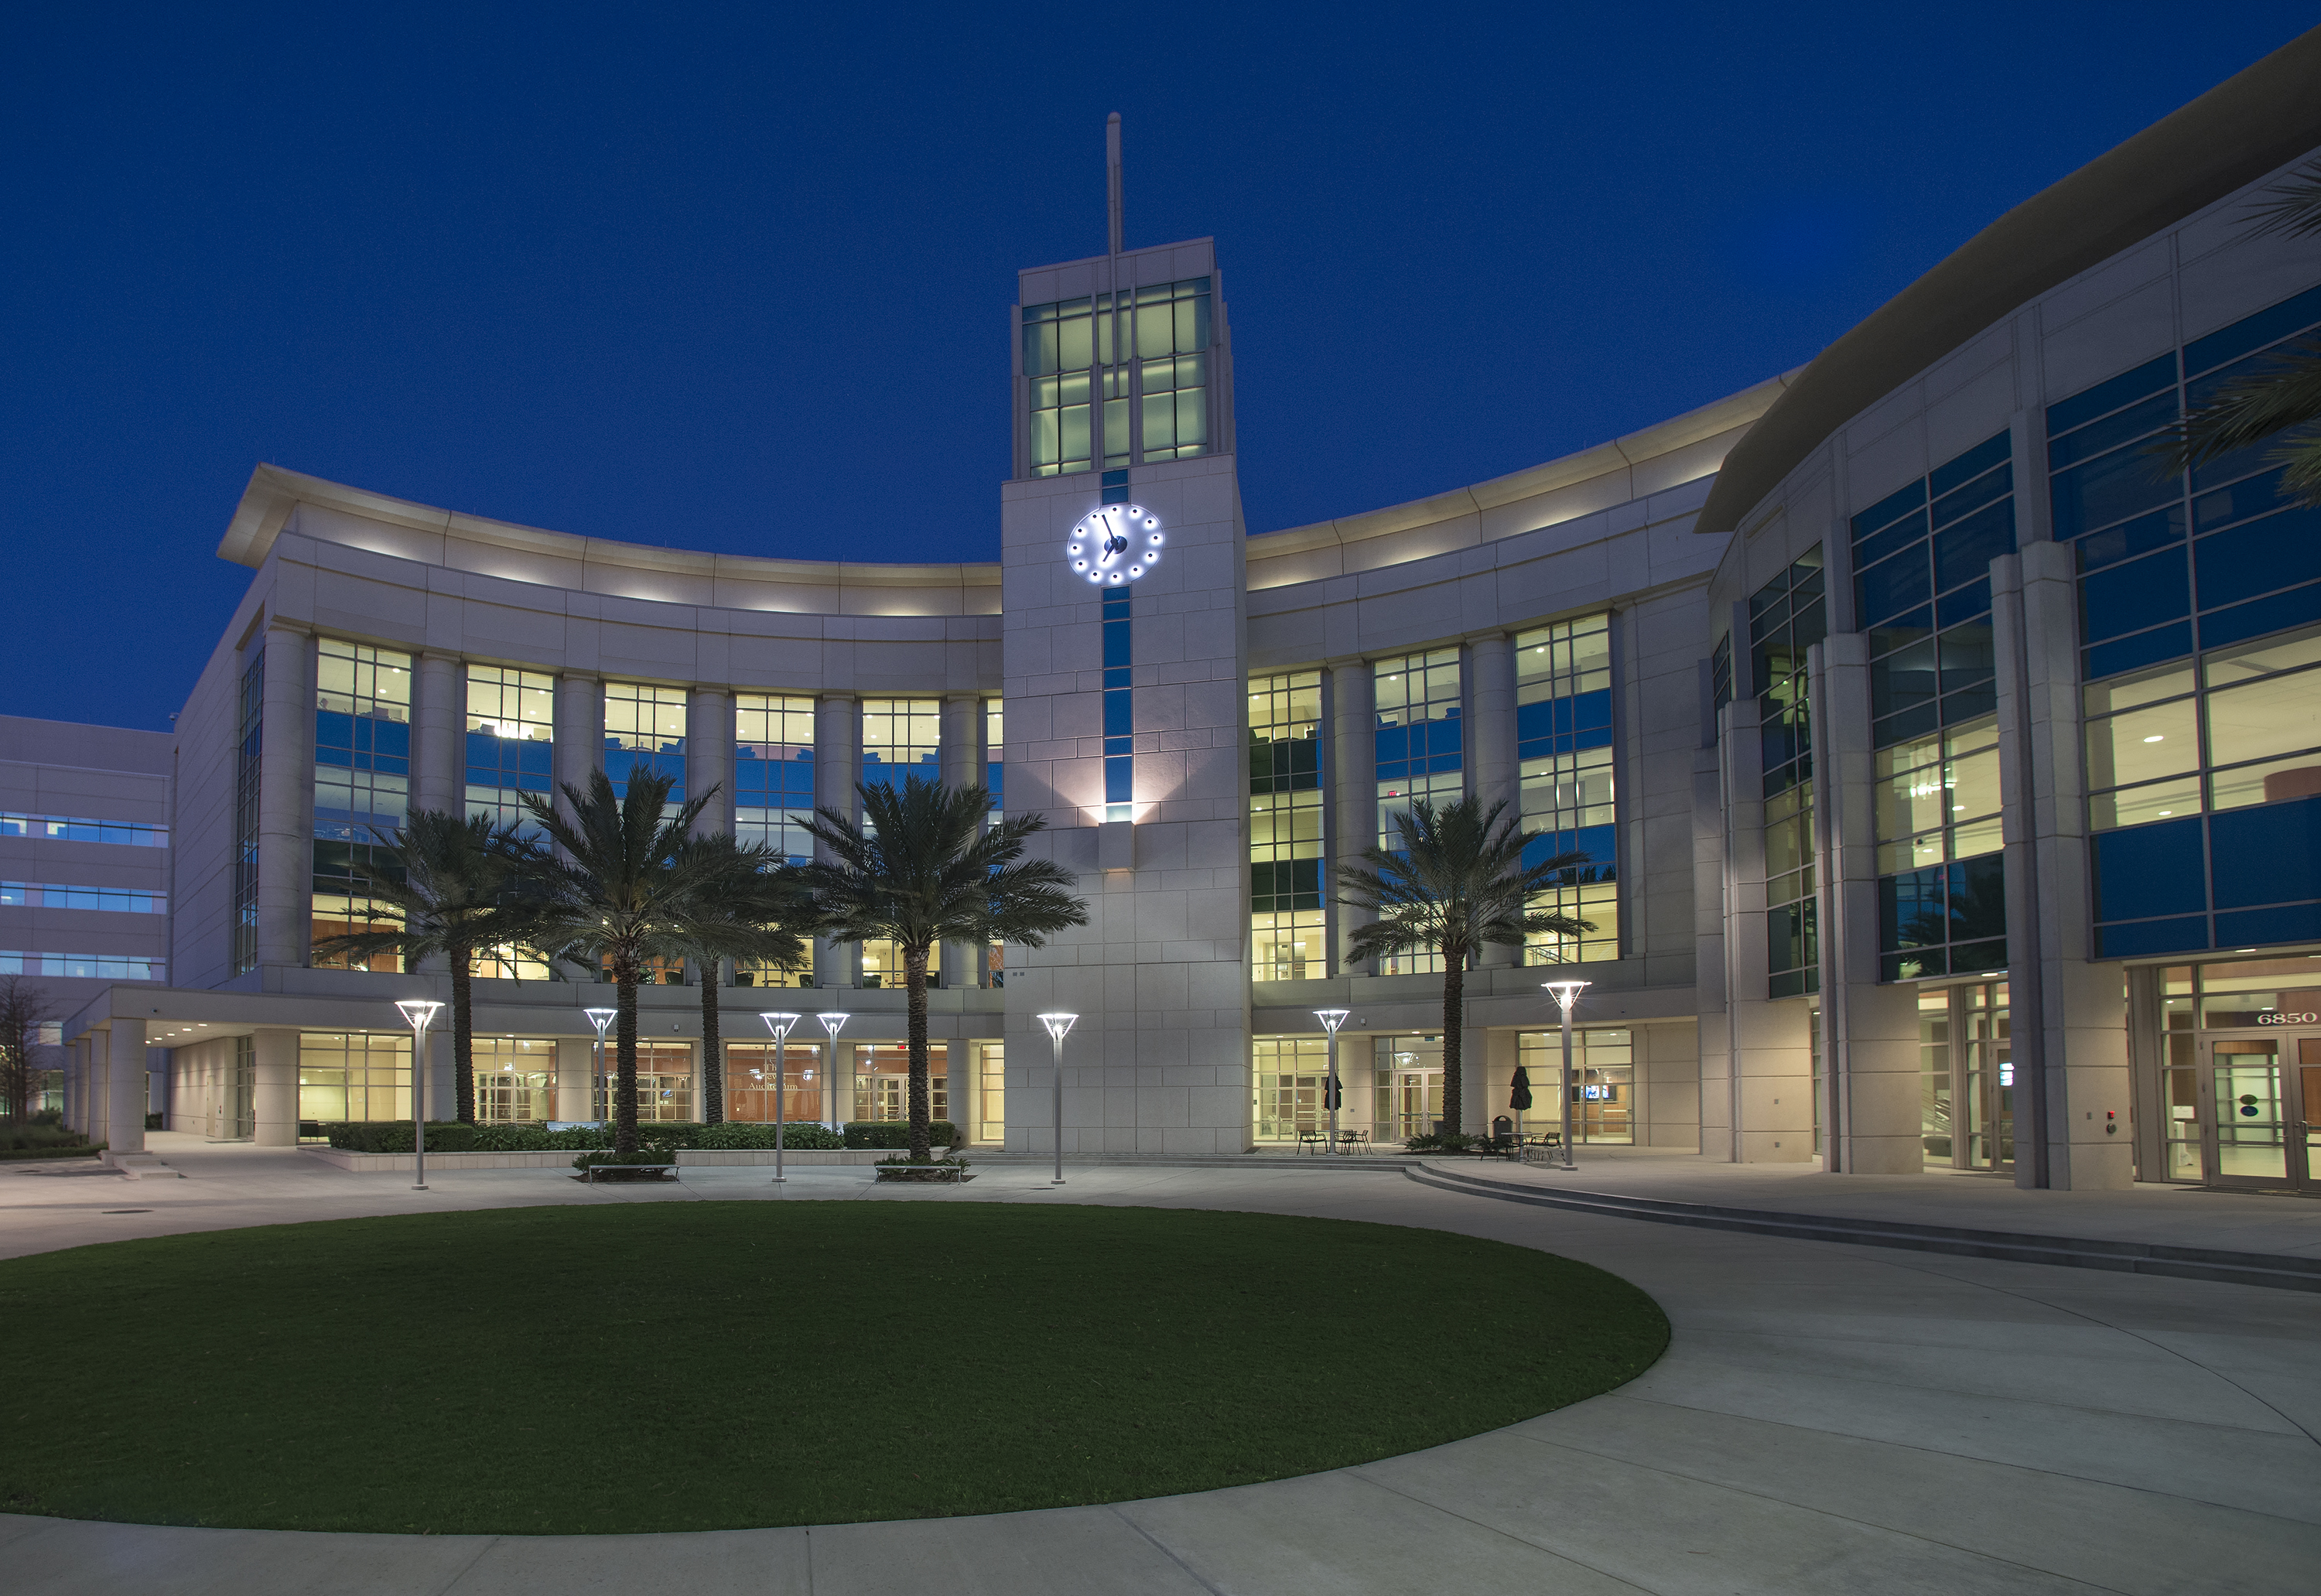 ... 171,000 Square Foot Building Serves As The Ceremonial Front Door For  The UCF College Of Medicine Campus Located On 50 Acres In Lake Nona, Florida .